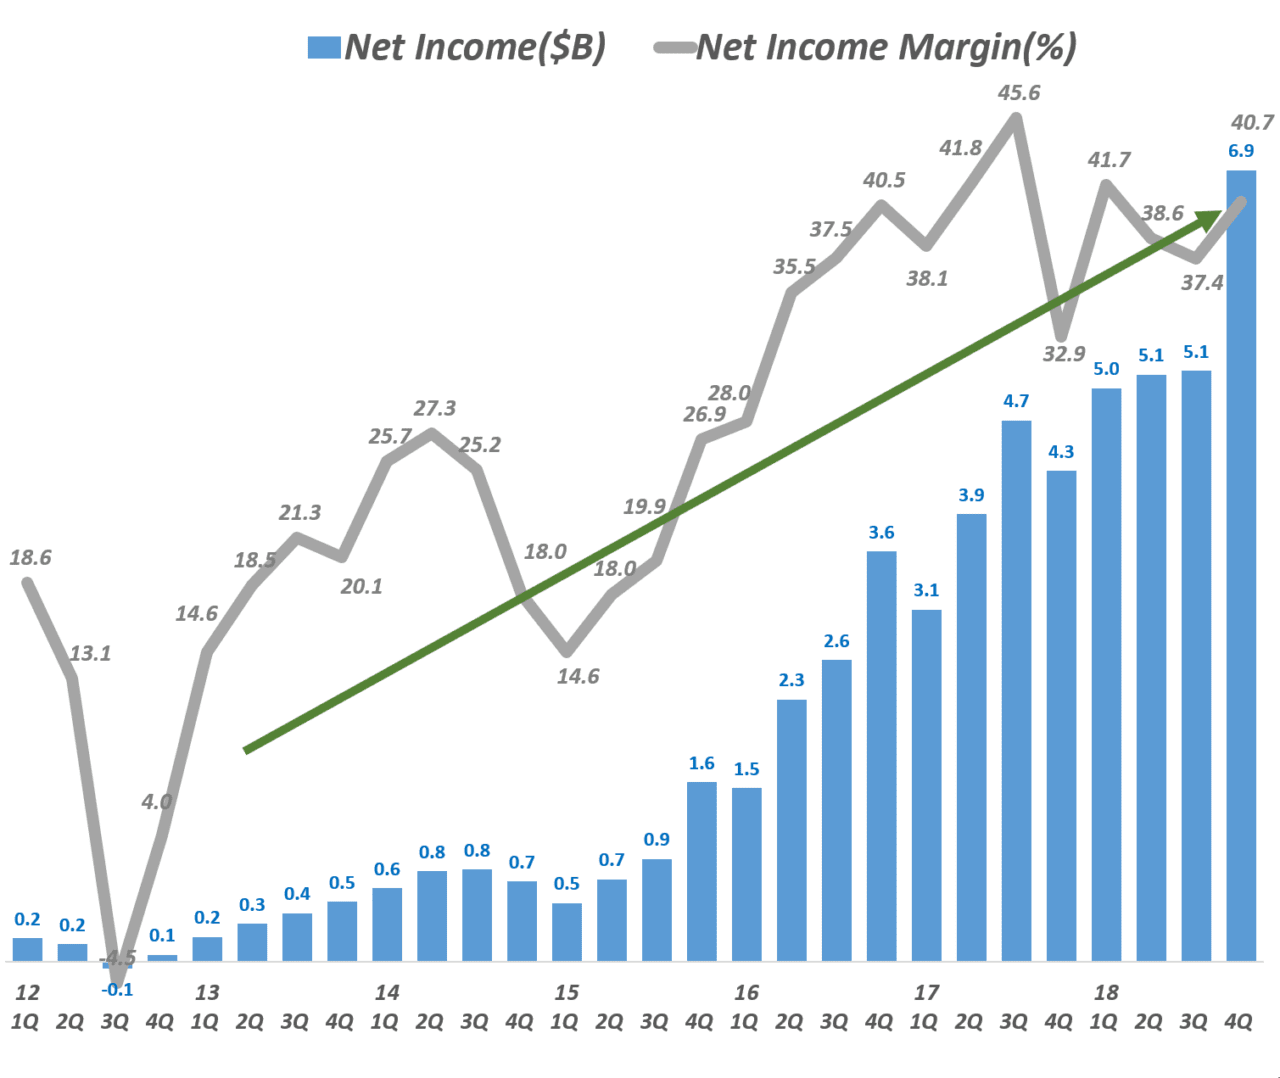 페이스북 분기별 순이익 추이(2012년 1분기 ~ 2018년 4분기), Facebook quartly Net Income trend, Data - invest.fb.com, Graph by Happist